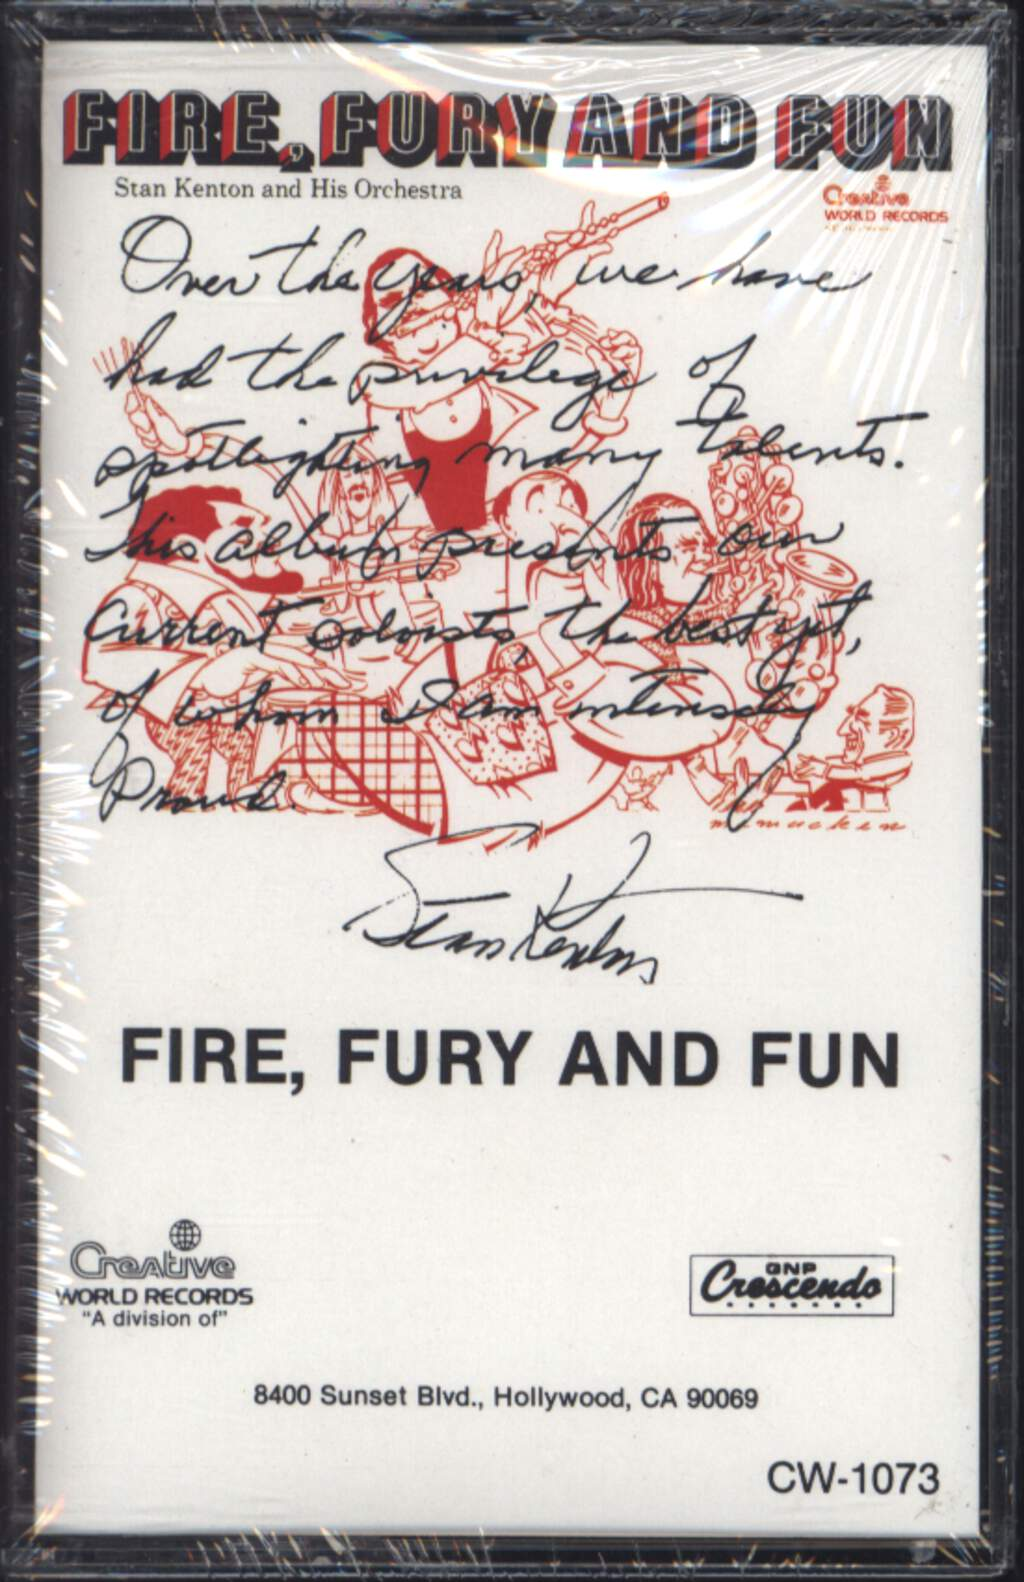 Stan Kenton And His Orchestra: Fire, Fury And Fun, Compact Cassette